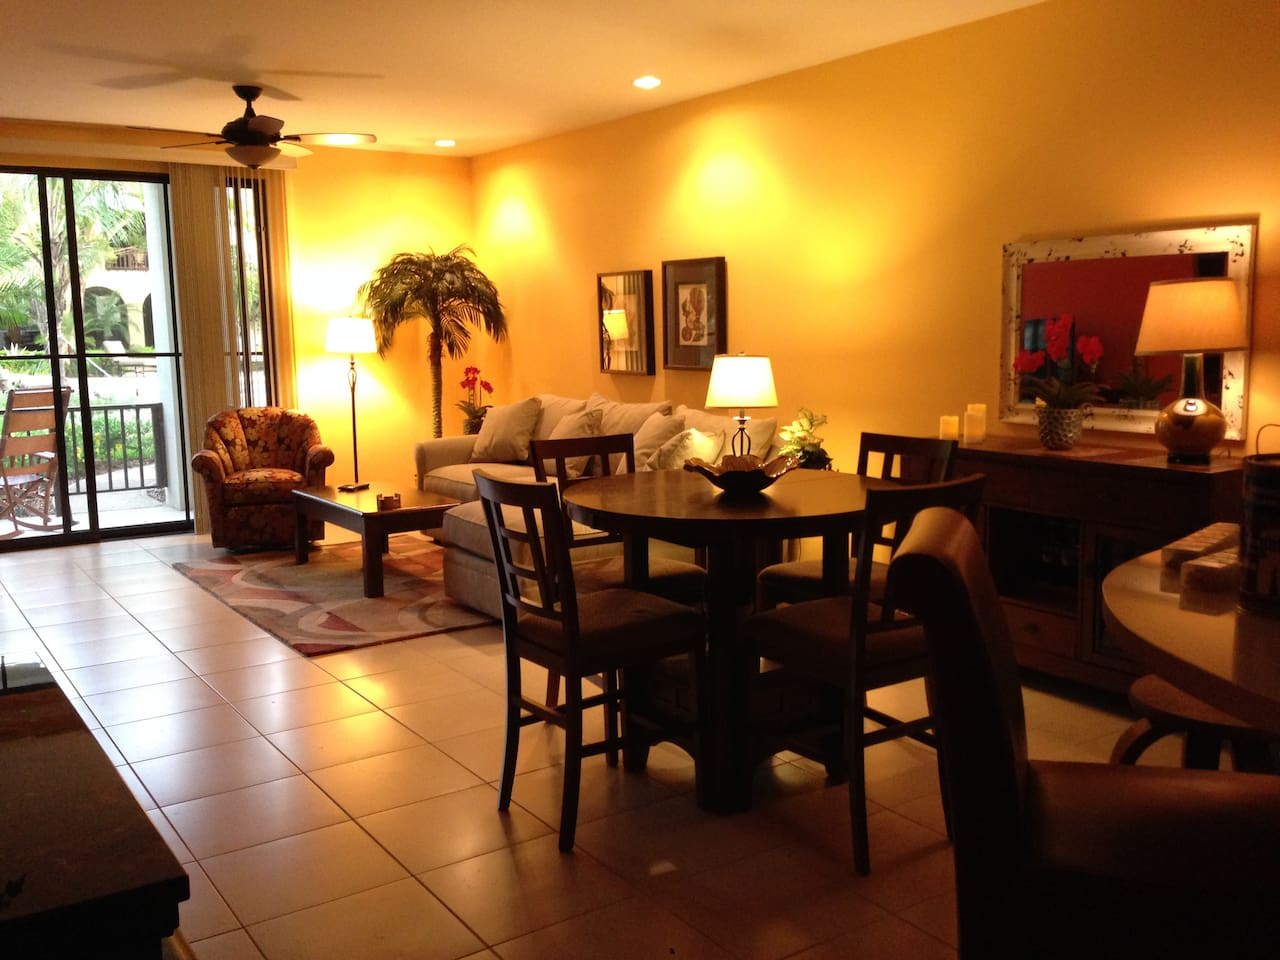 Beautiful, open living area with very comfortable furnishings.